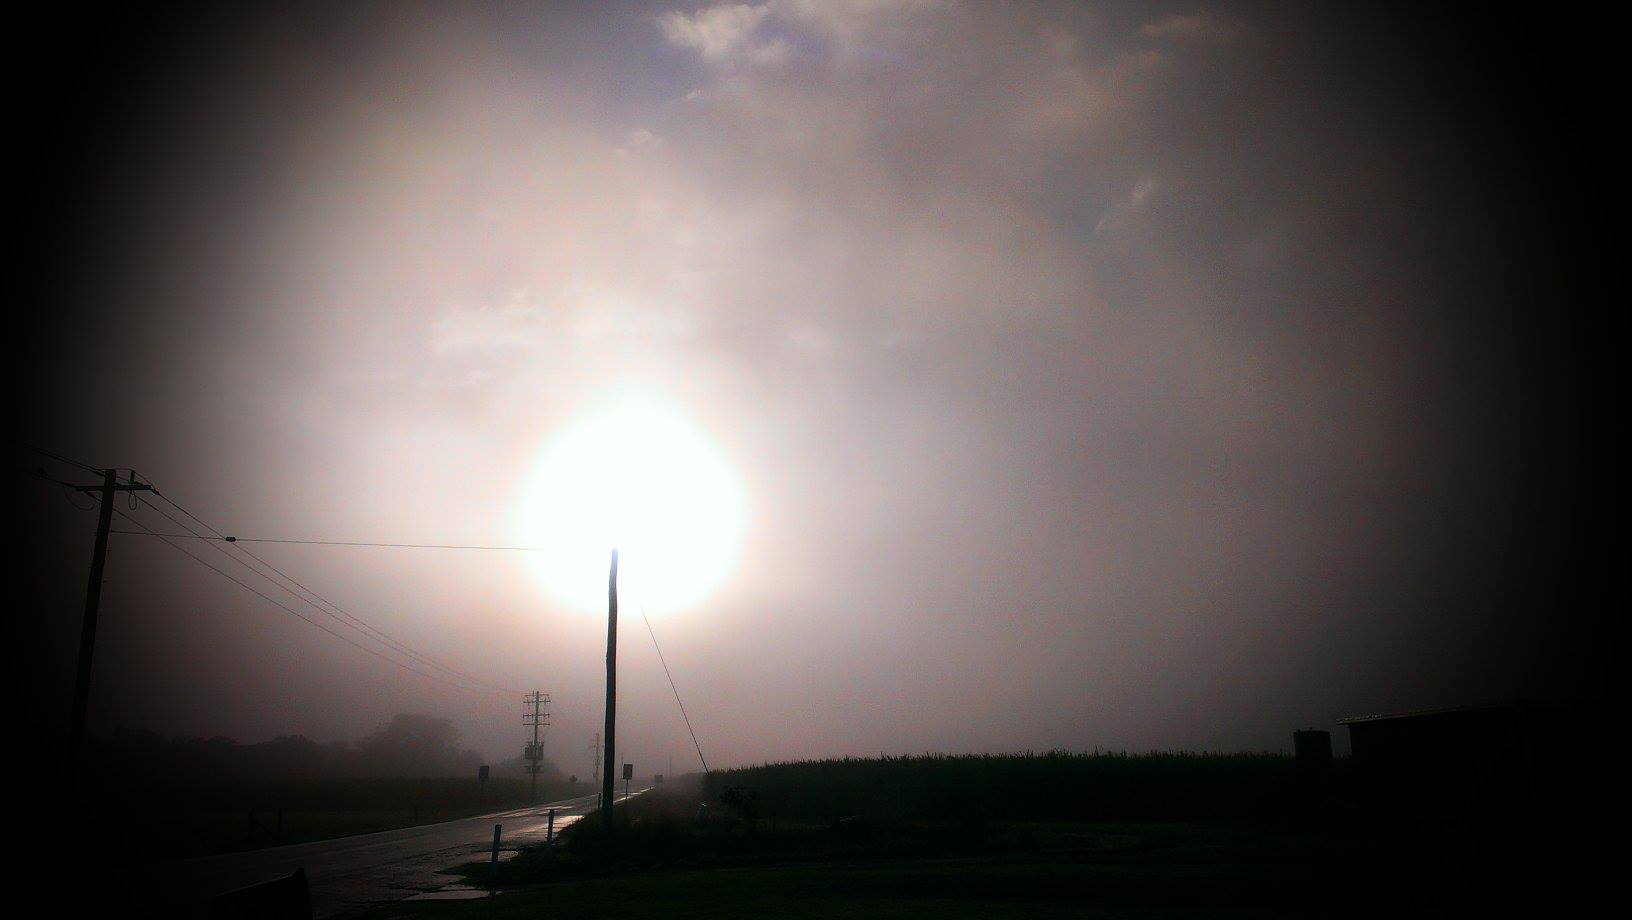 Tammy Houston of Wardell took this photo of fog on River Drive at East Wardell this morning. Motorists are being urged to take care in foggy conditions after several crashes in this morning's mist.